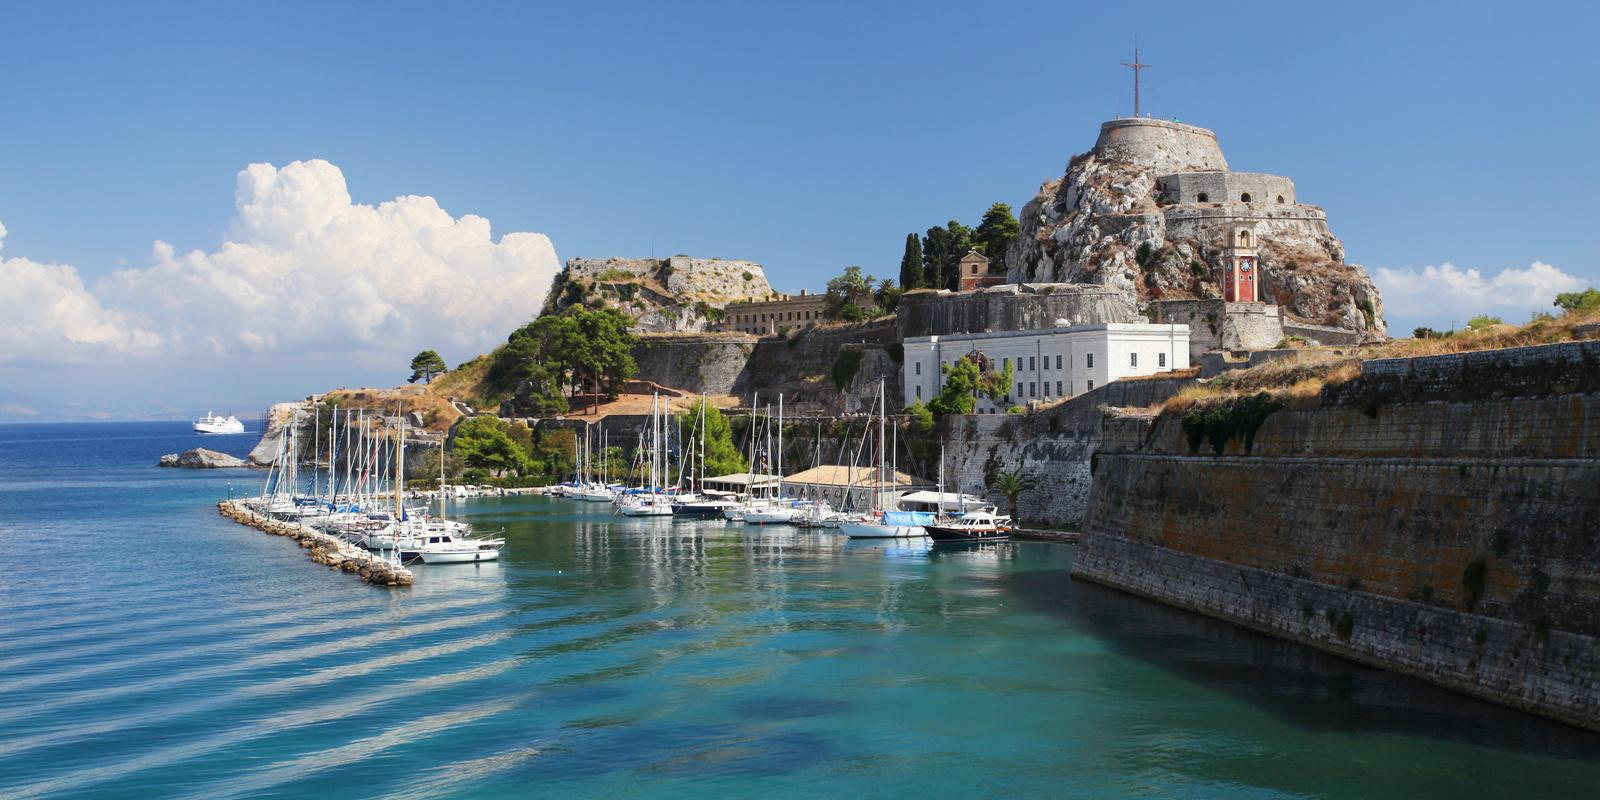 Sailing boat rentals: Corfu and surroundings by boat!